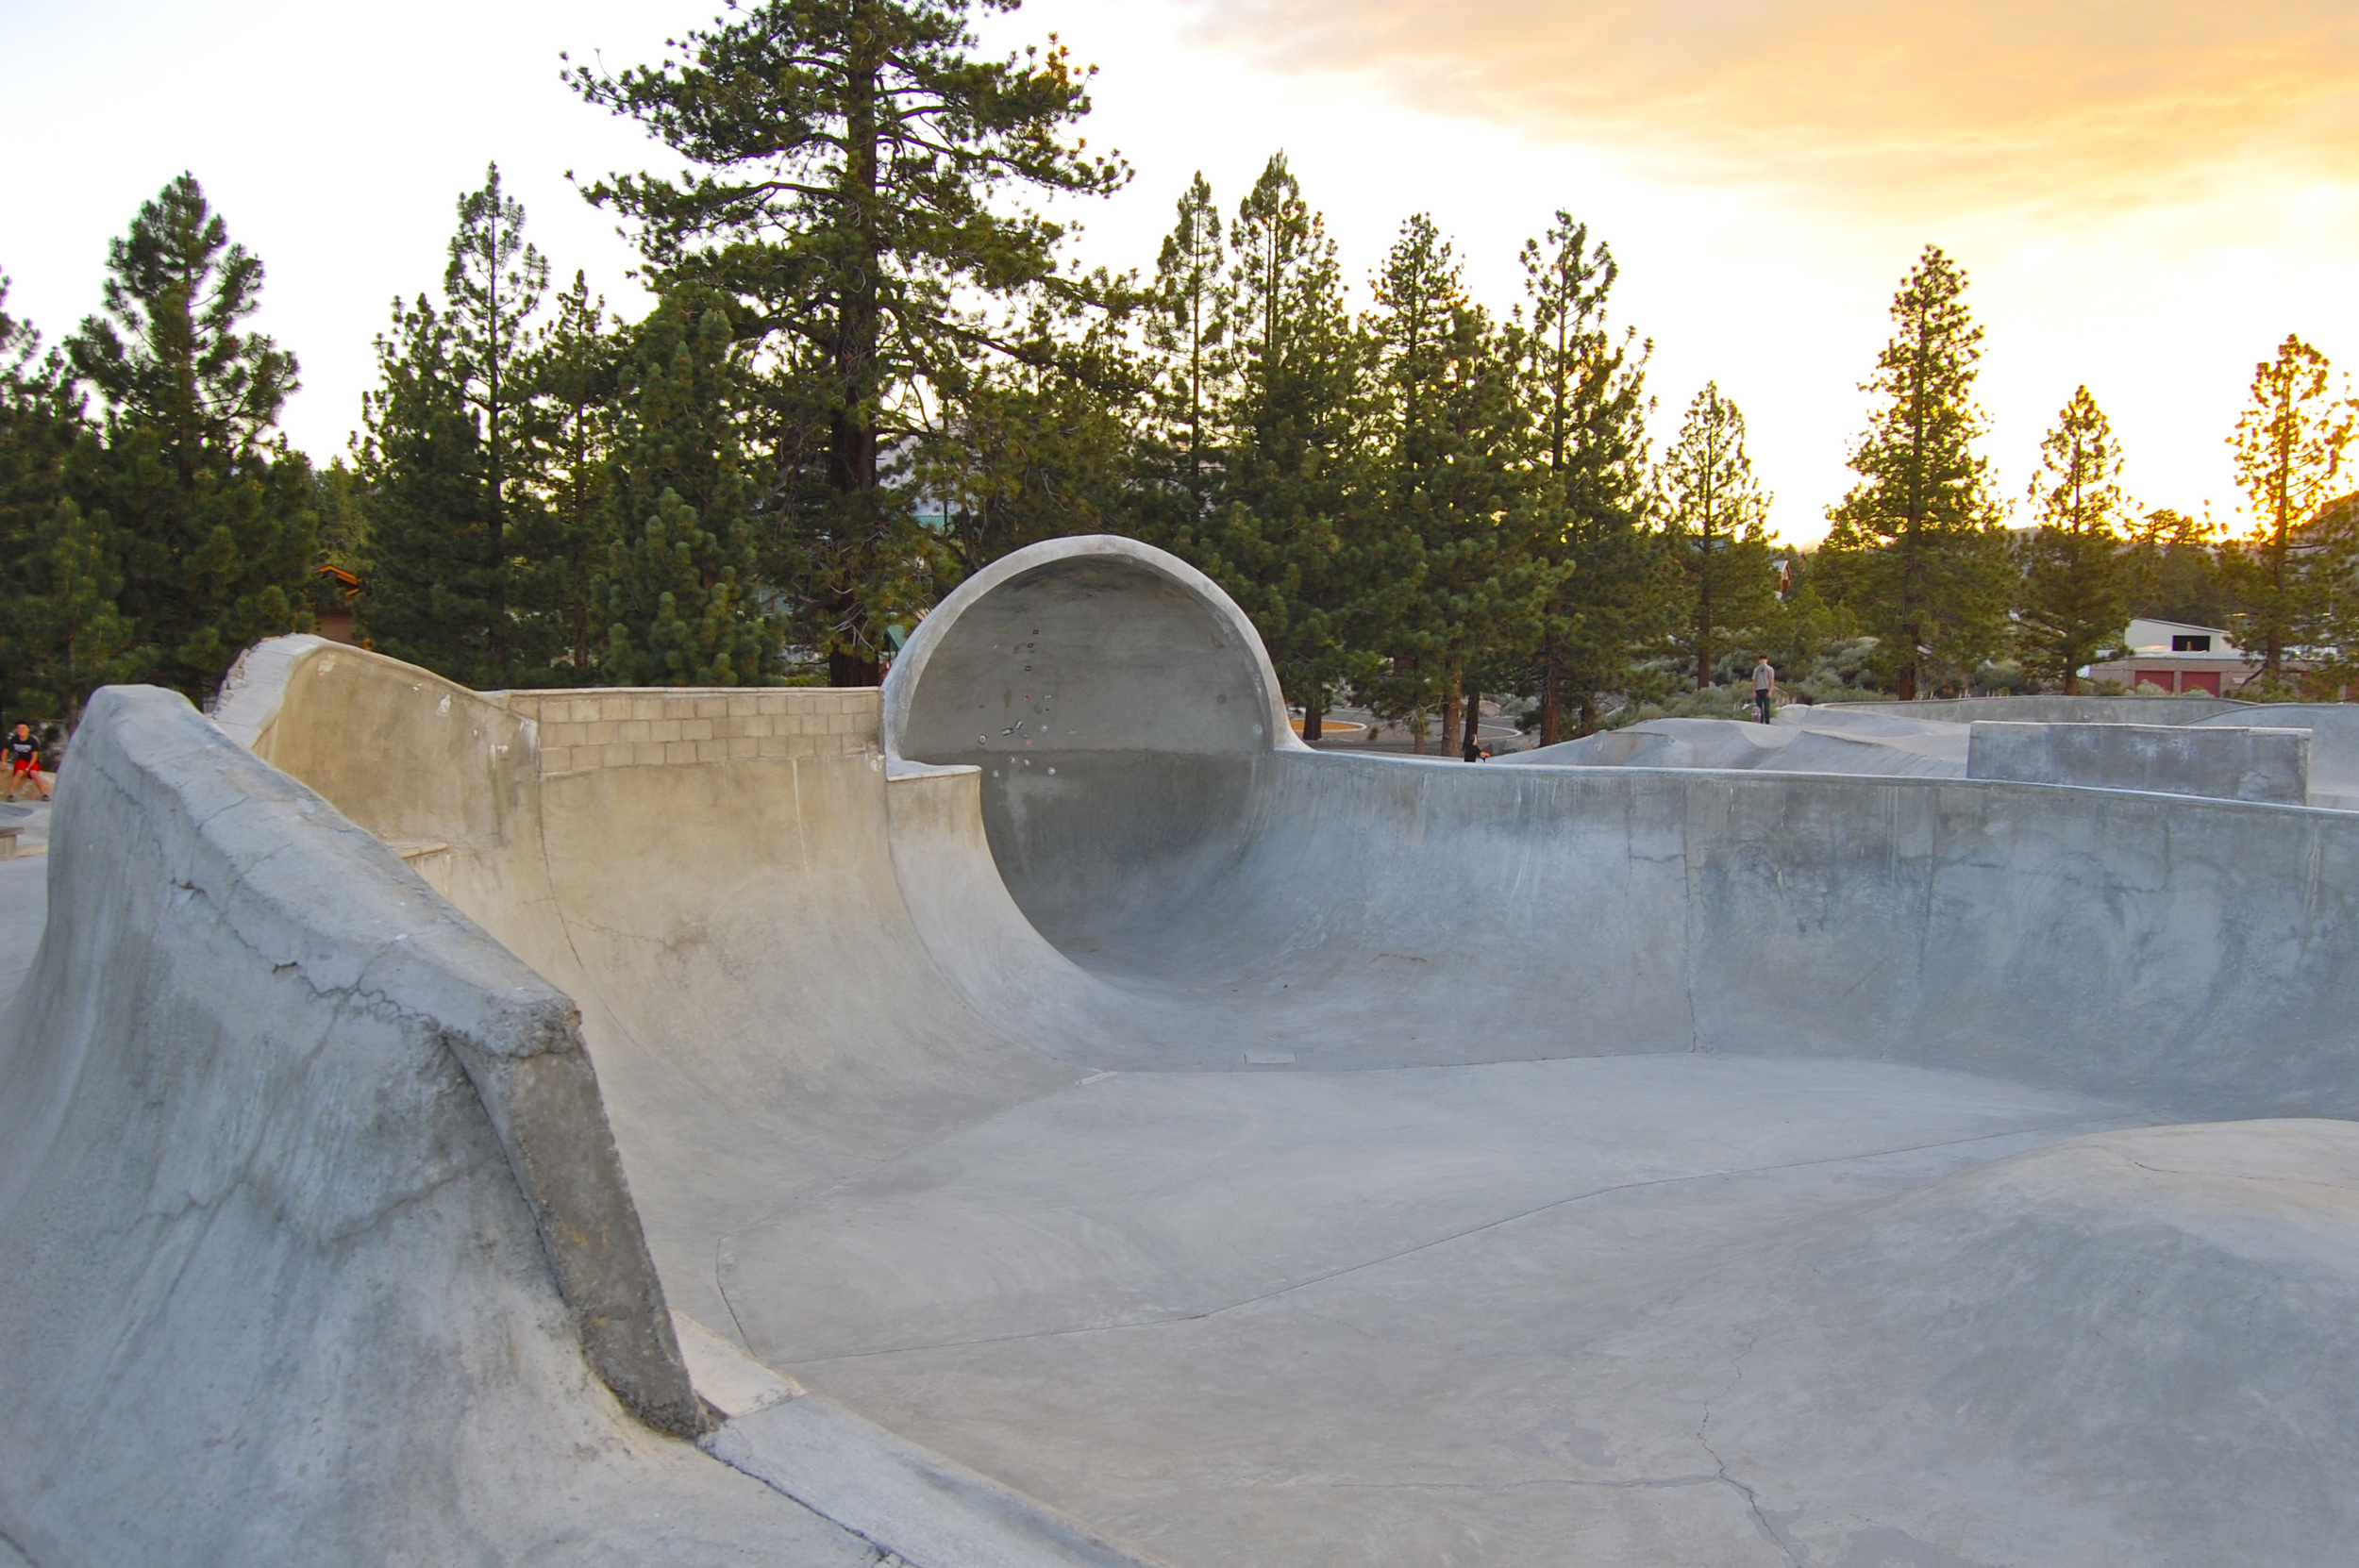 Volcom Brothers Skatepark features a massive cradle that challenges the most seasoned vert/bowl skater.